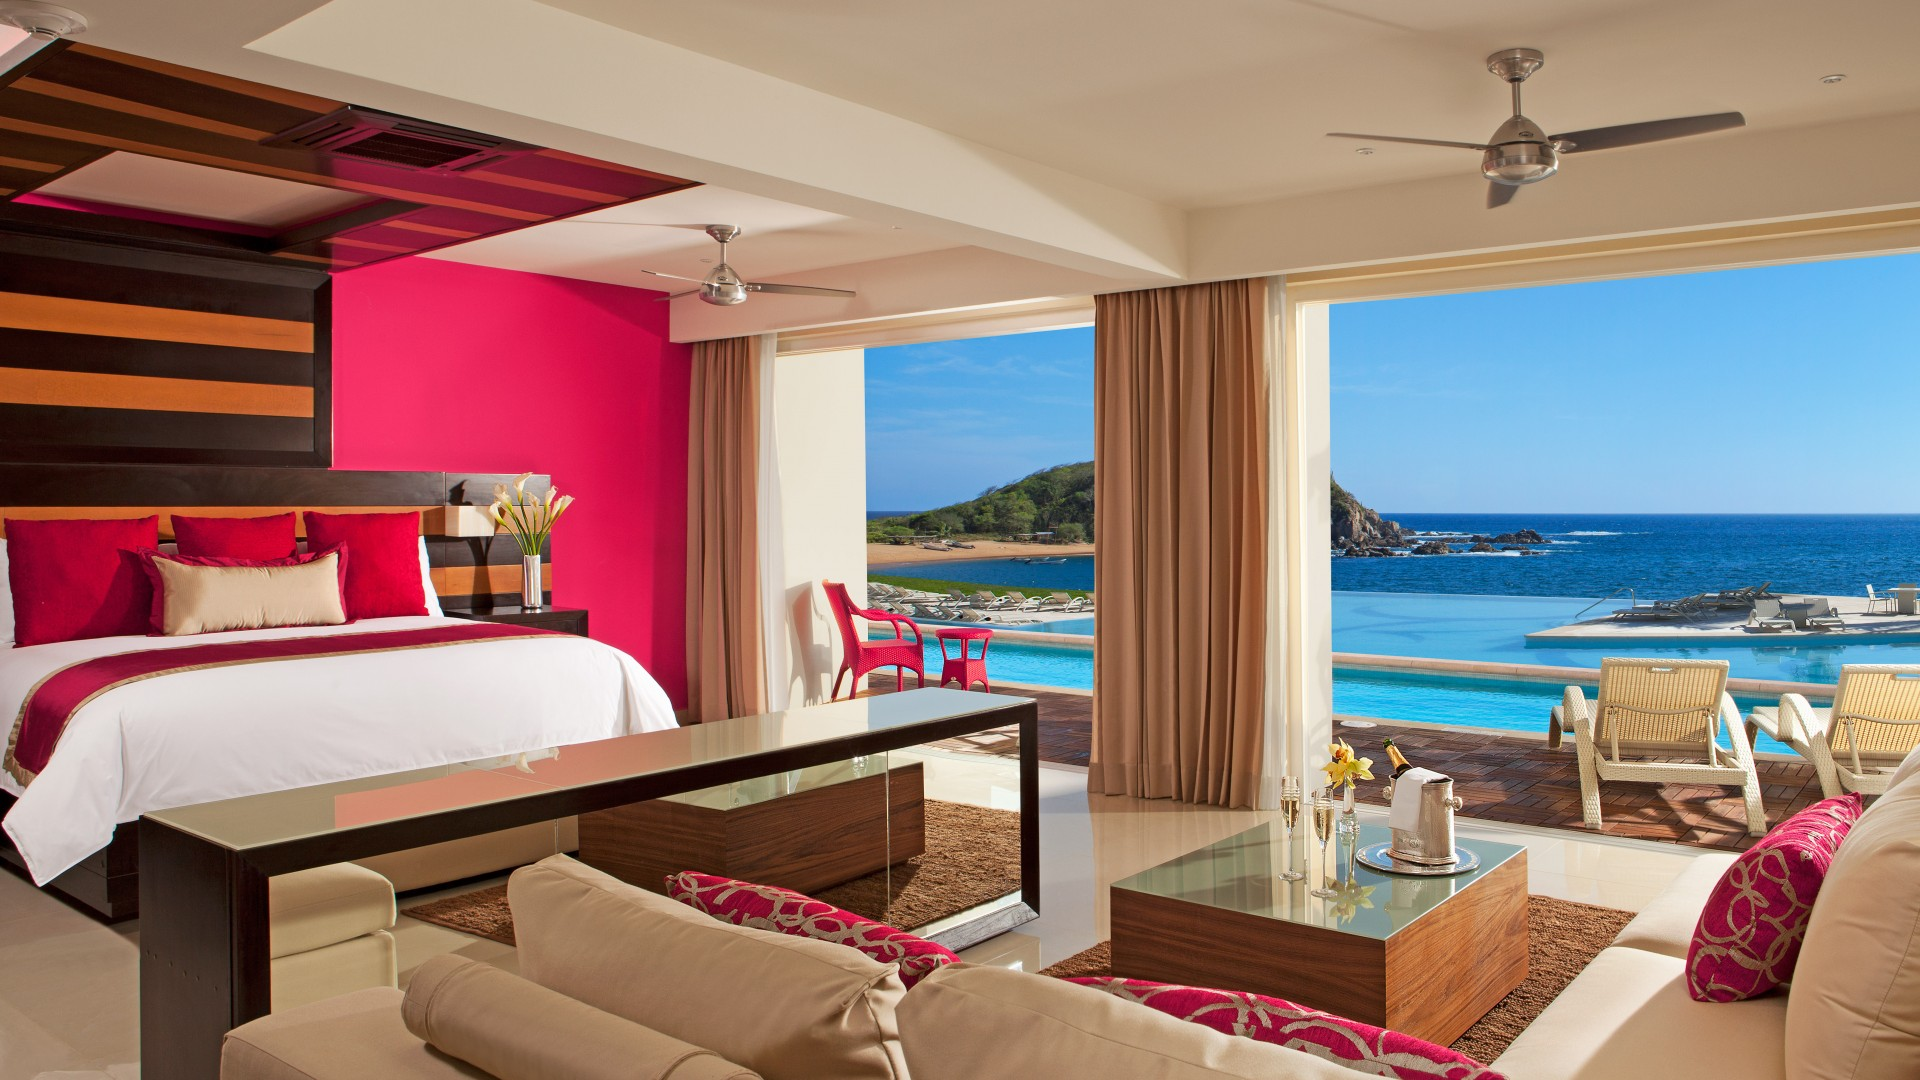 Secrets Huatulco Resort And Spa, Best Hotels of 2015, tourism, travel, resort, vacation, bed, sea, ocean, pink (horizontal)